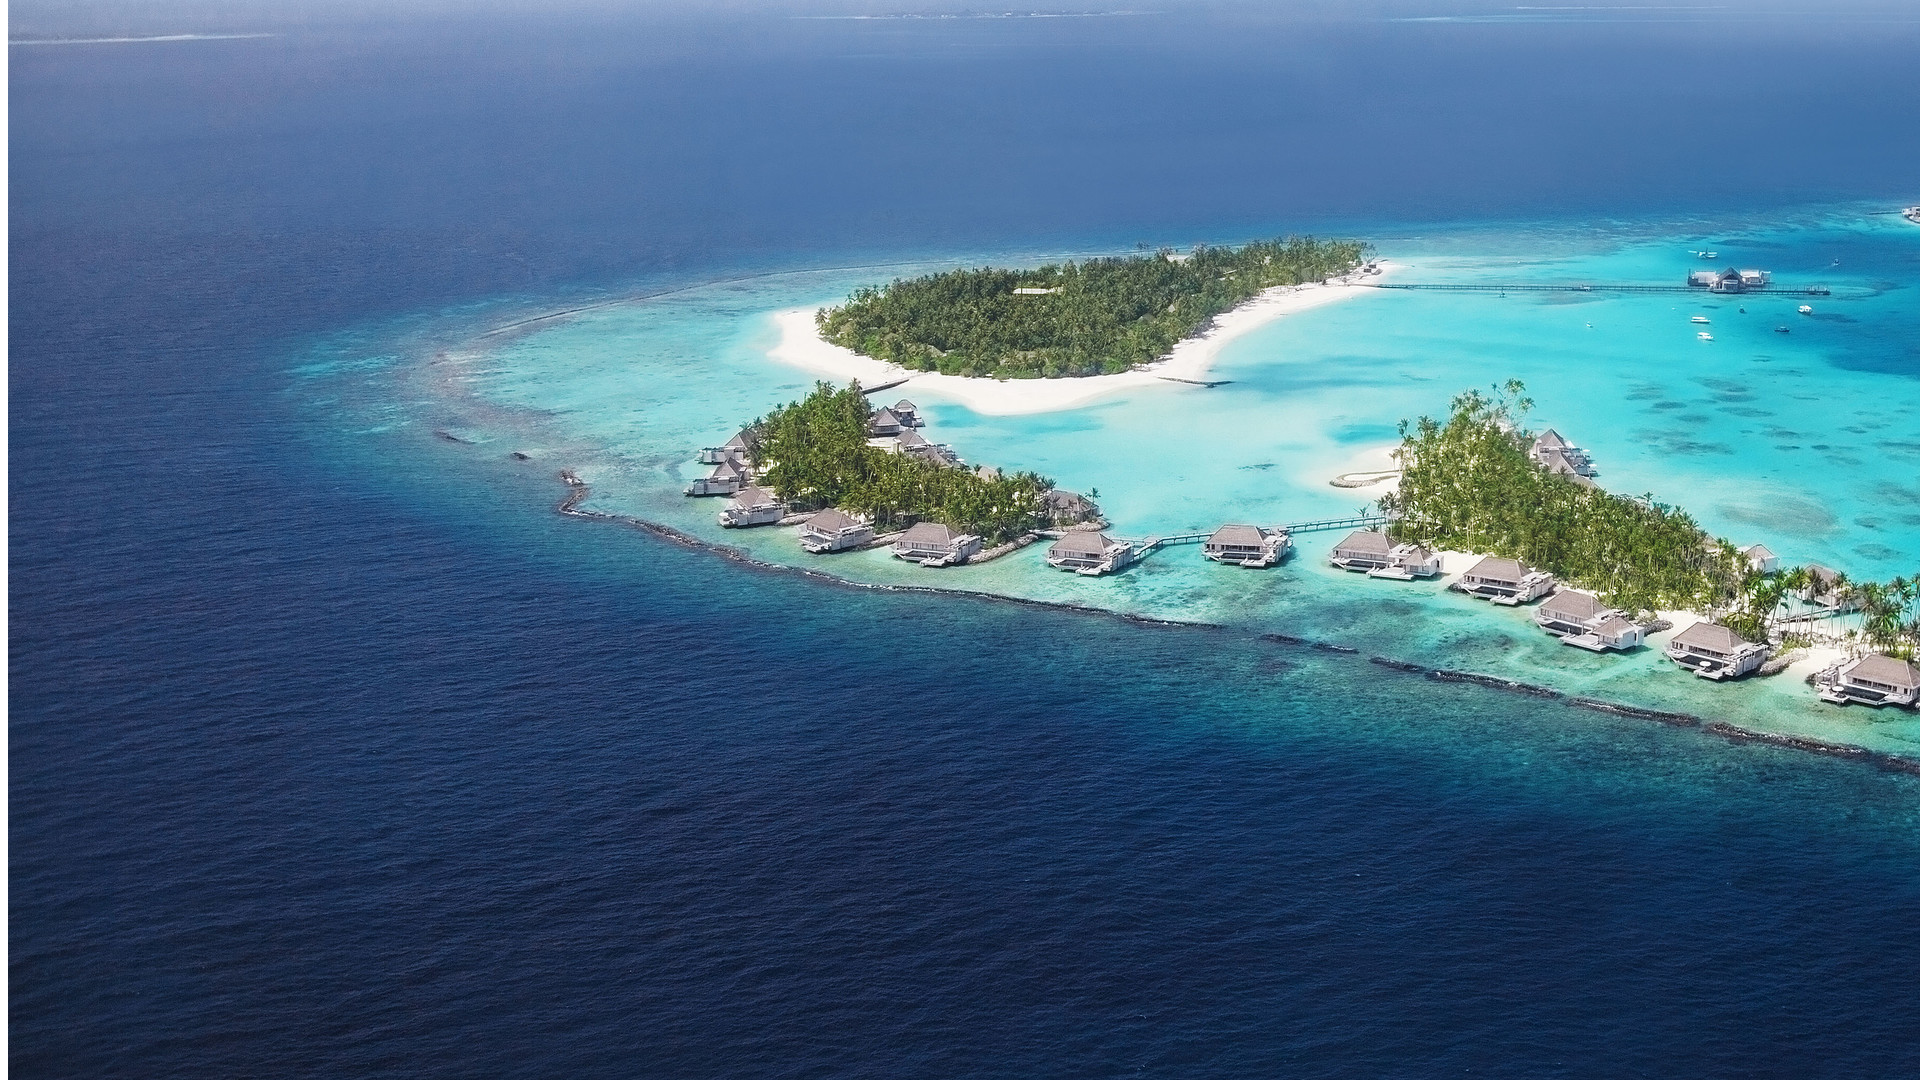 Luxury hotel in the Maldives | Cheval Blanc Randheli